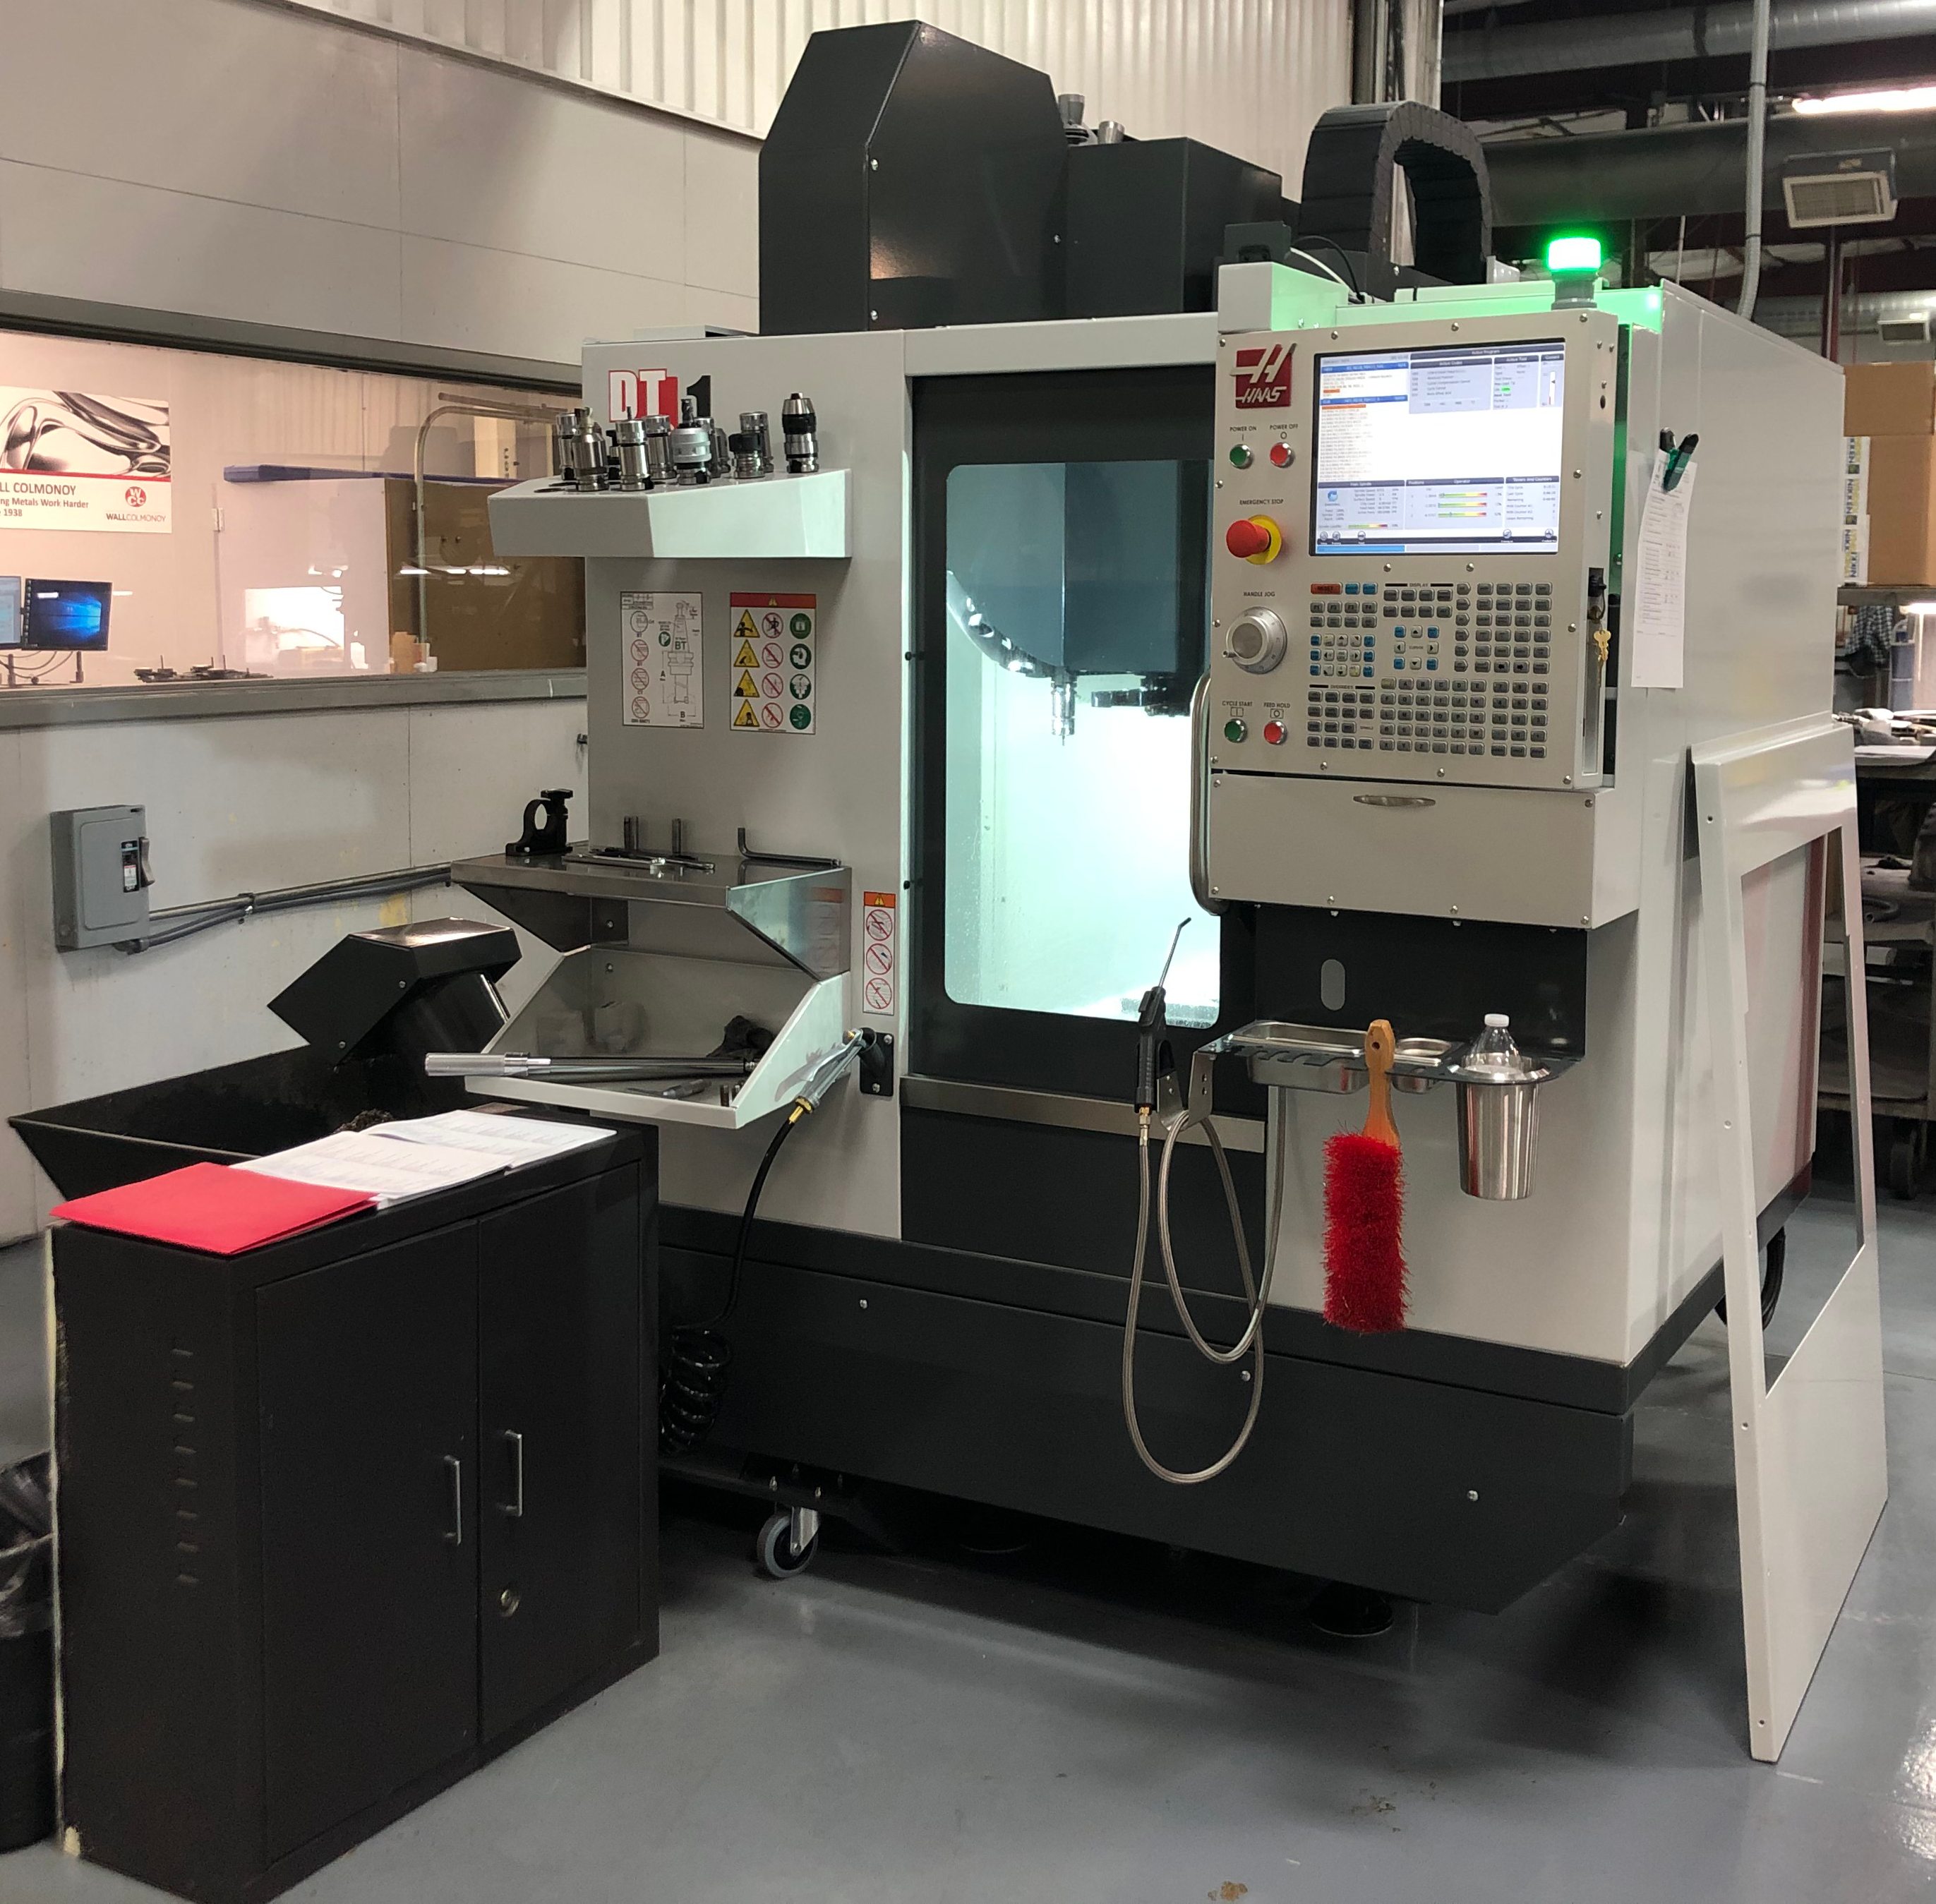 Haas DT-1 3 Axis Milling Machine - Web Image